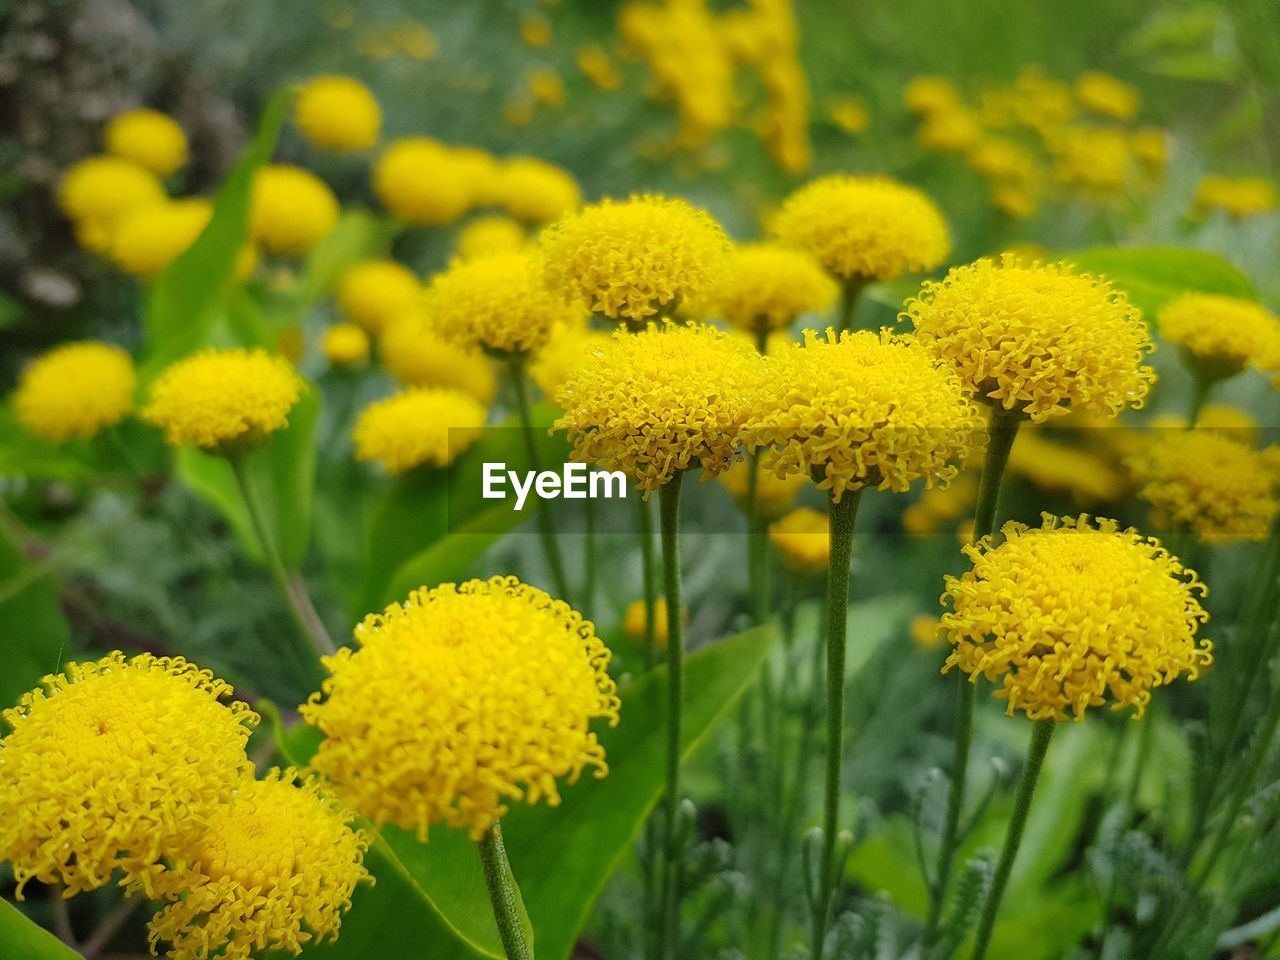 yellow, flower, flowering plant, beauty in nature, plant, growth, vulnerability, fragility, freshness, flower head, close-up, petal, inflorescence, green color, nature, day, field, no people, focus on foreground, botany, outdoors, springtime